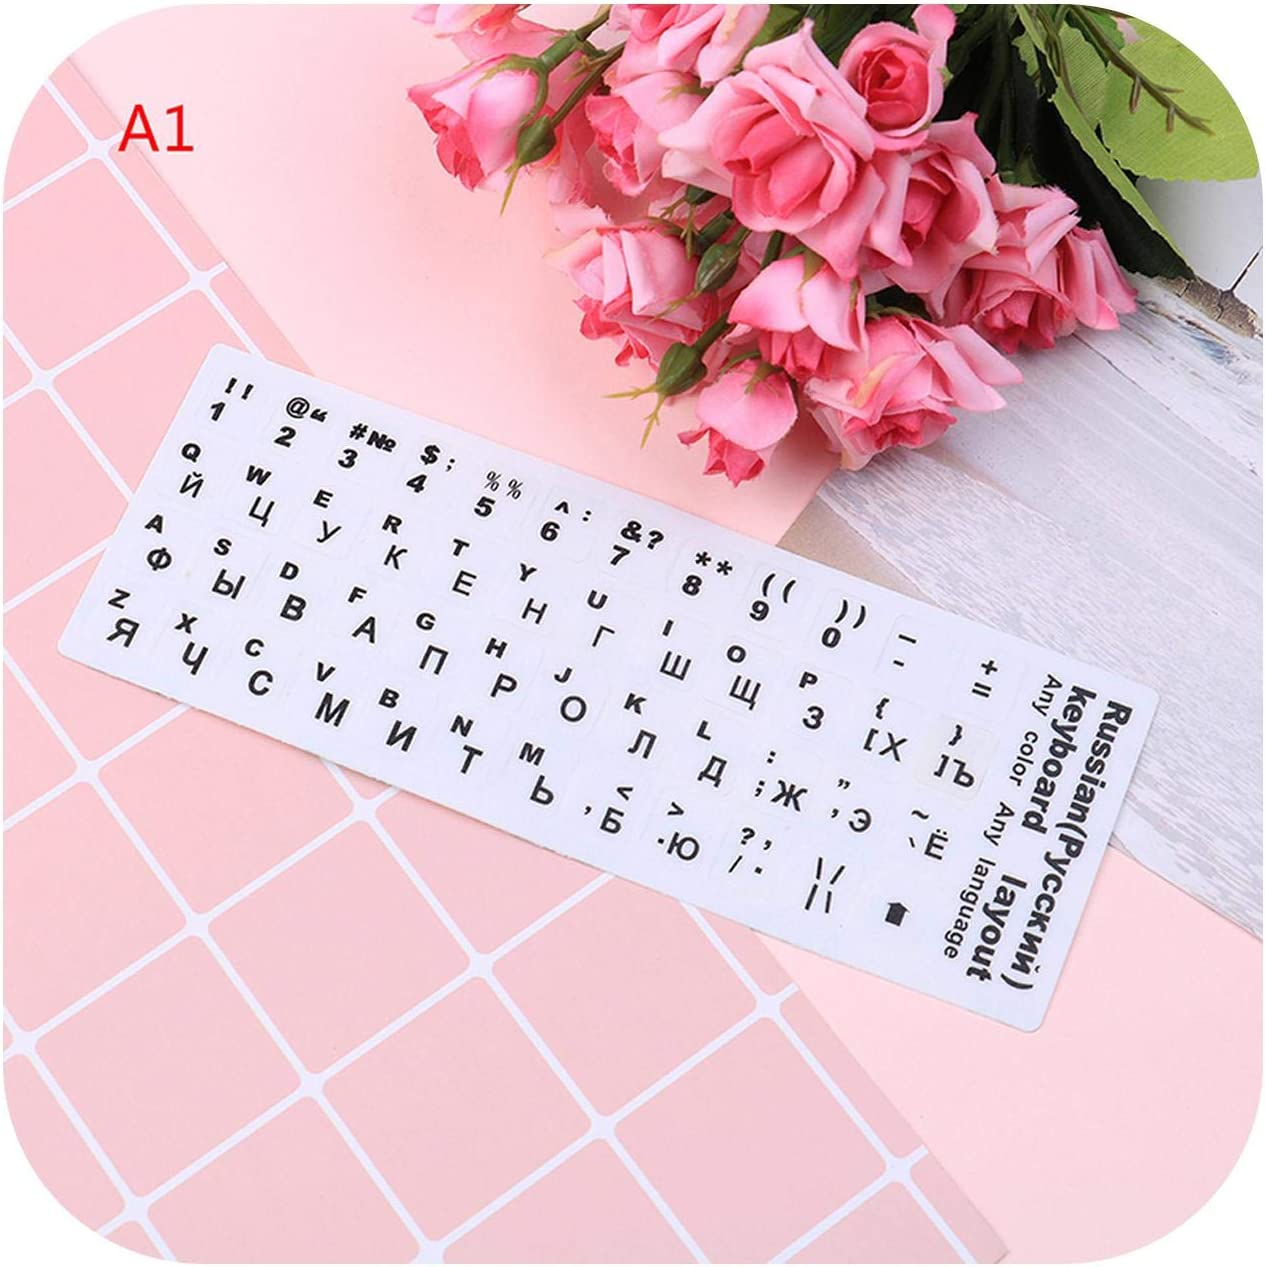 Russian Keyboard Cover Stickers for Mac Book Laptop PC Keyboard 10 to 17 Computer Standard Letter Layout Keyboard Covers Film-3